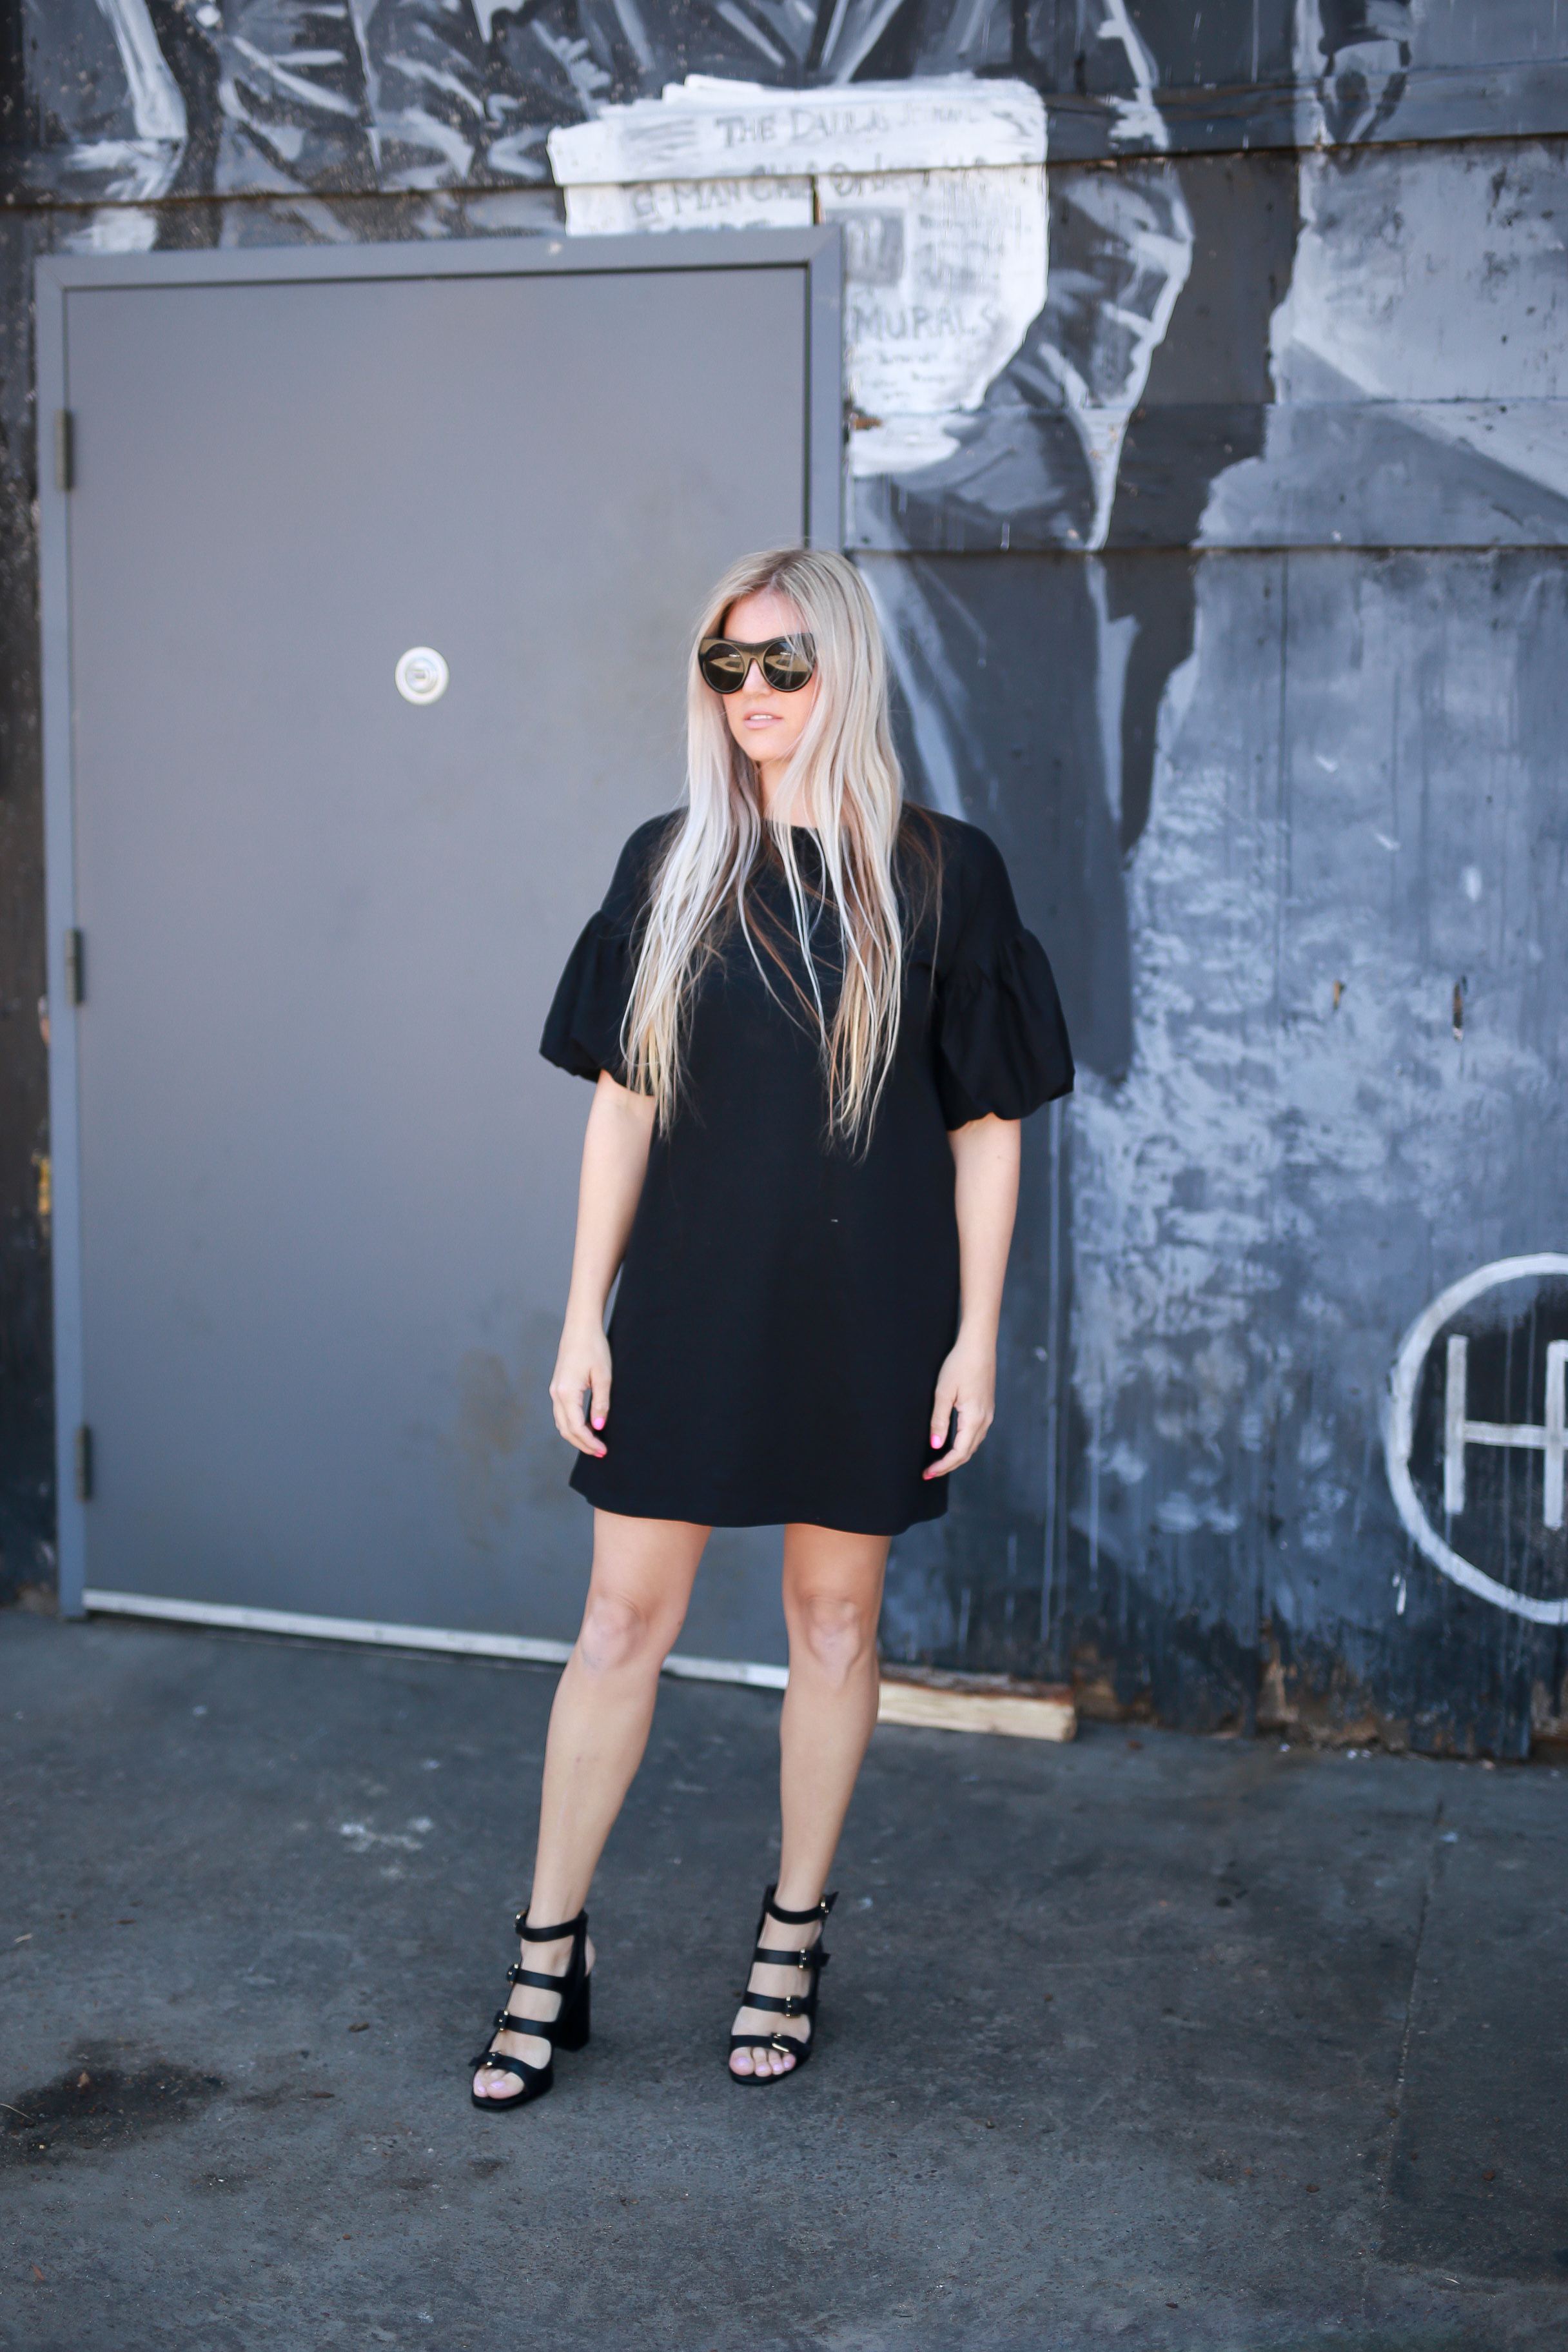 Stephany Bowman Editor of Stephany's Choice wearing ZARA black jersey dress, black buckle ALDO heels and Cat eye HENRI BENDEL sunglasses